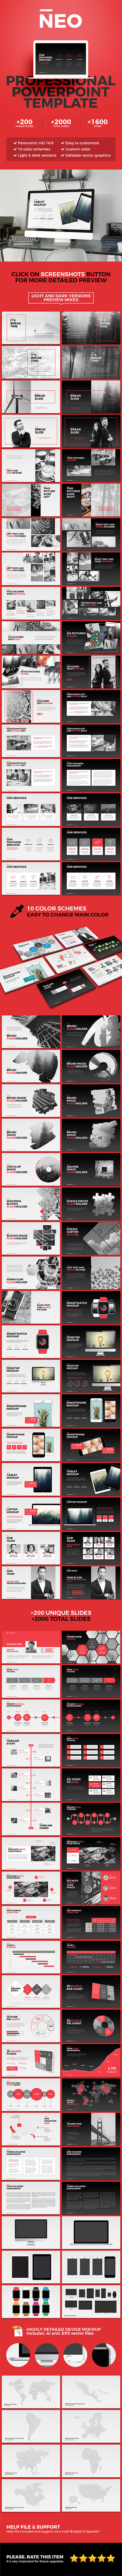 powerpoint template powerpoint presentation annual report Sales Report marketing presentation Startup business